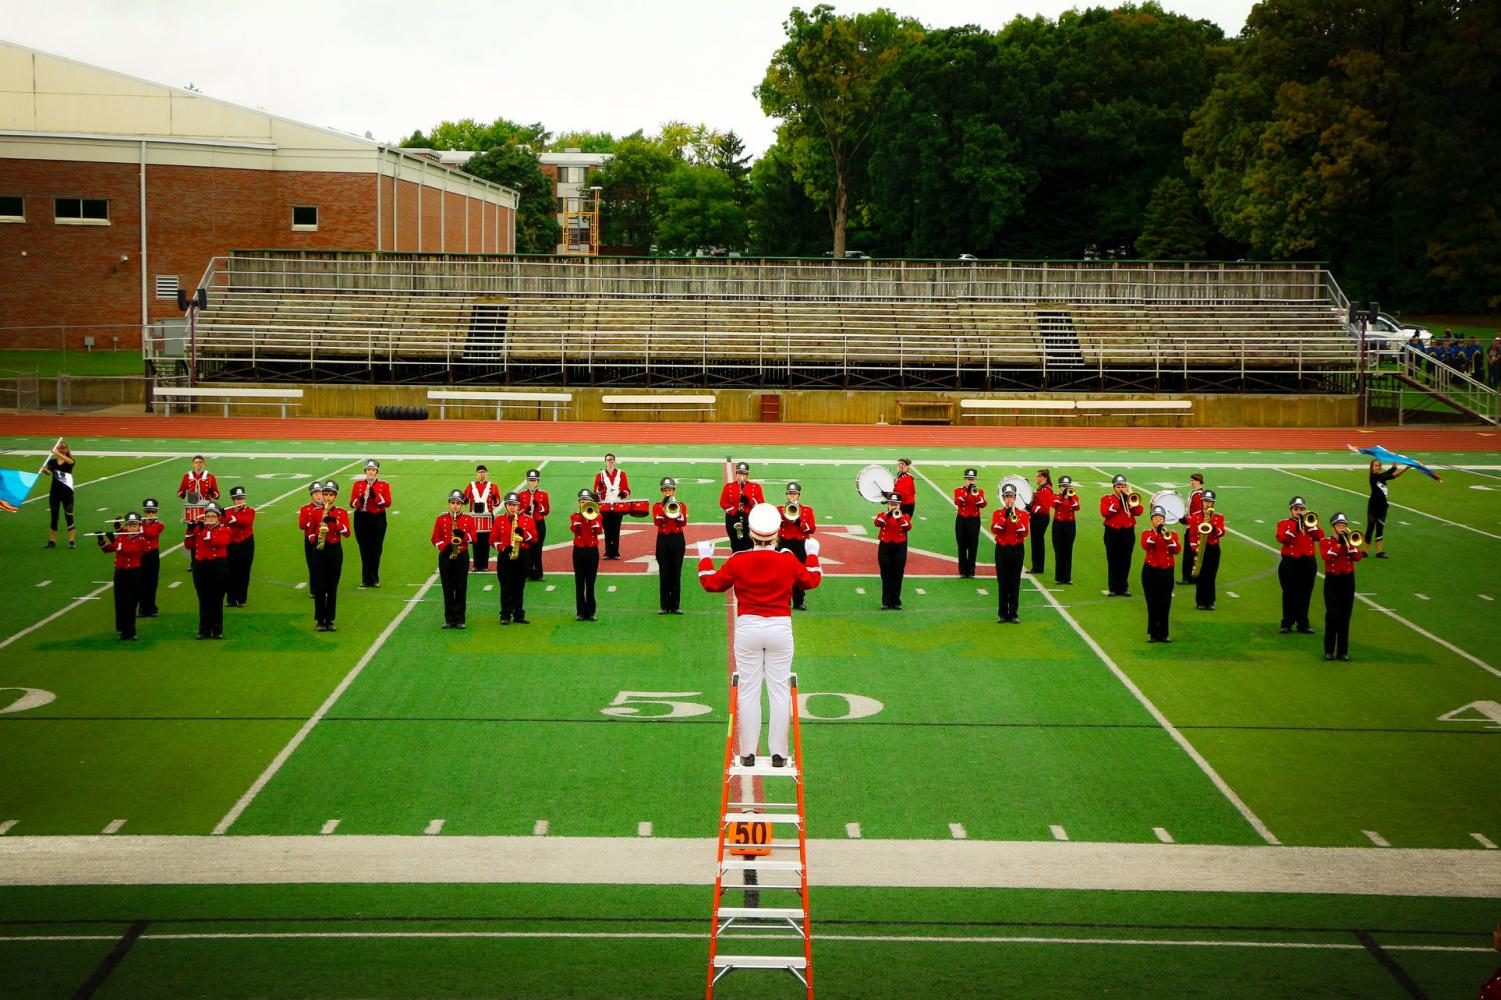 The Saint Louis band performs on a football field.